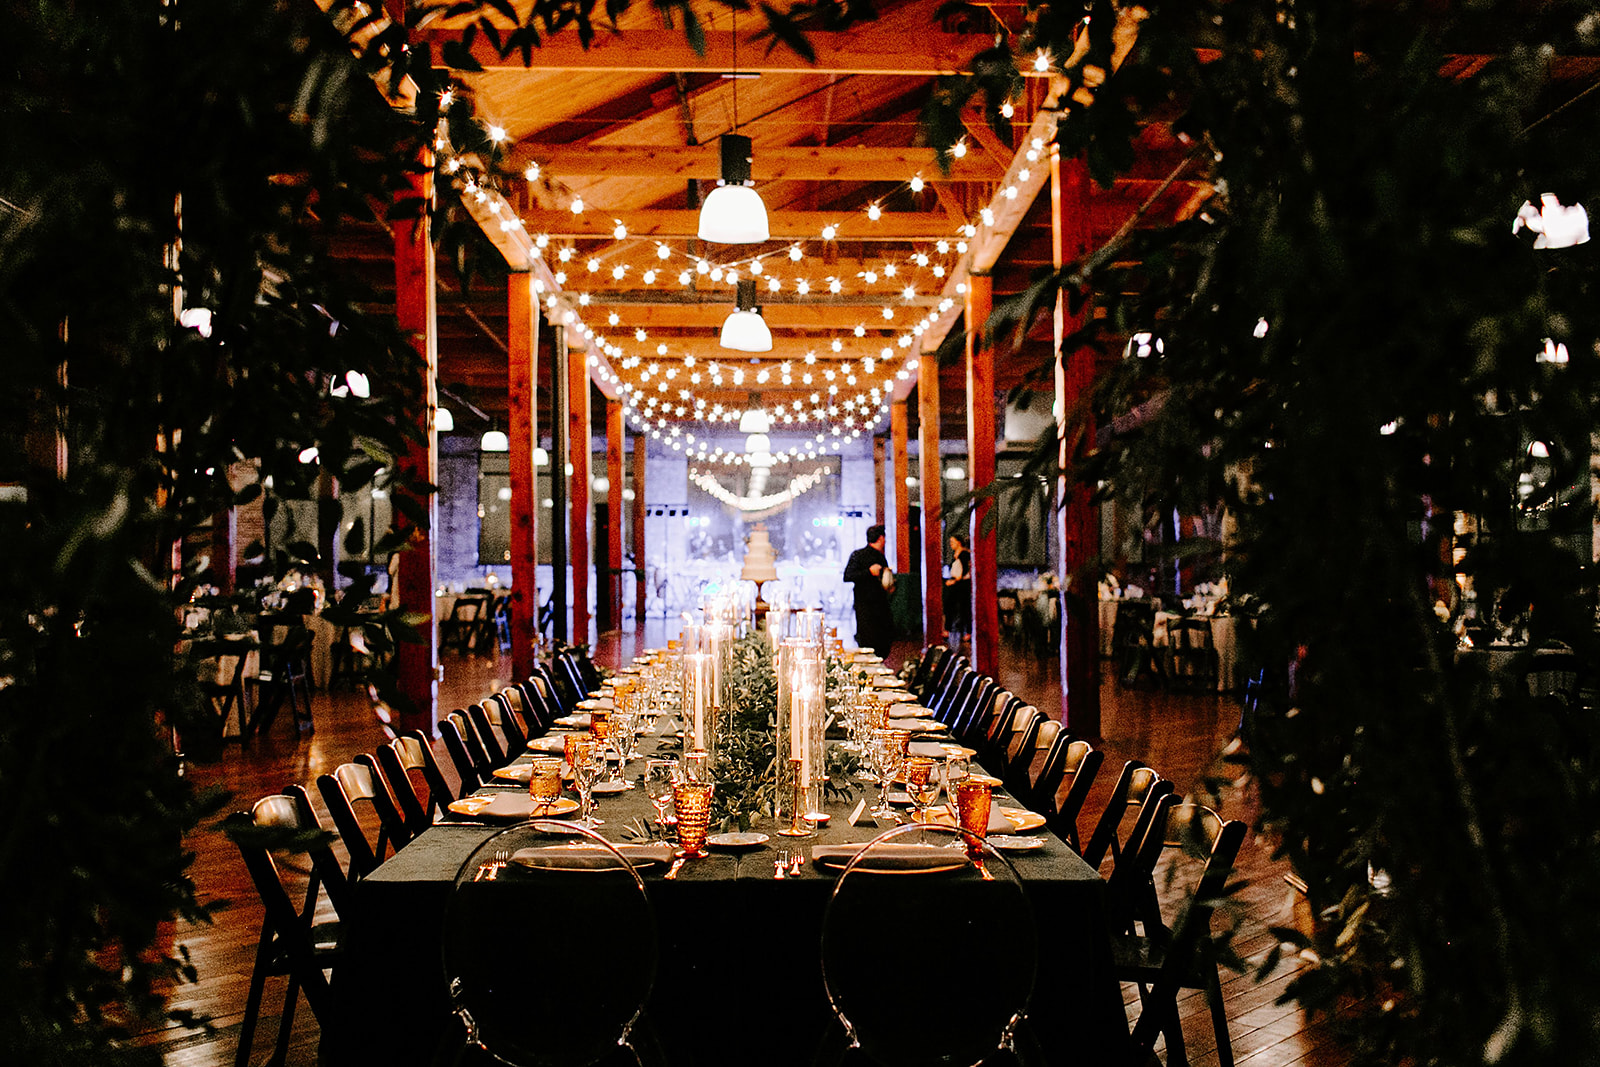 Biltwell Event Center Wedding in Indianapolis, Indiana